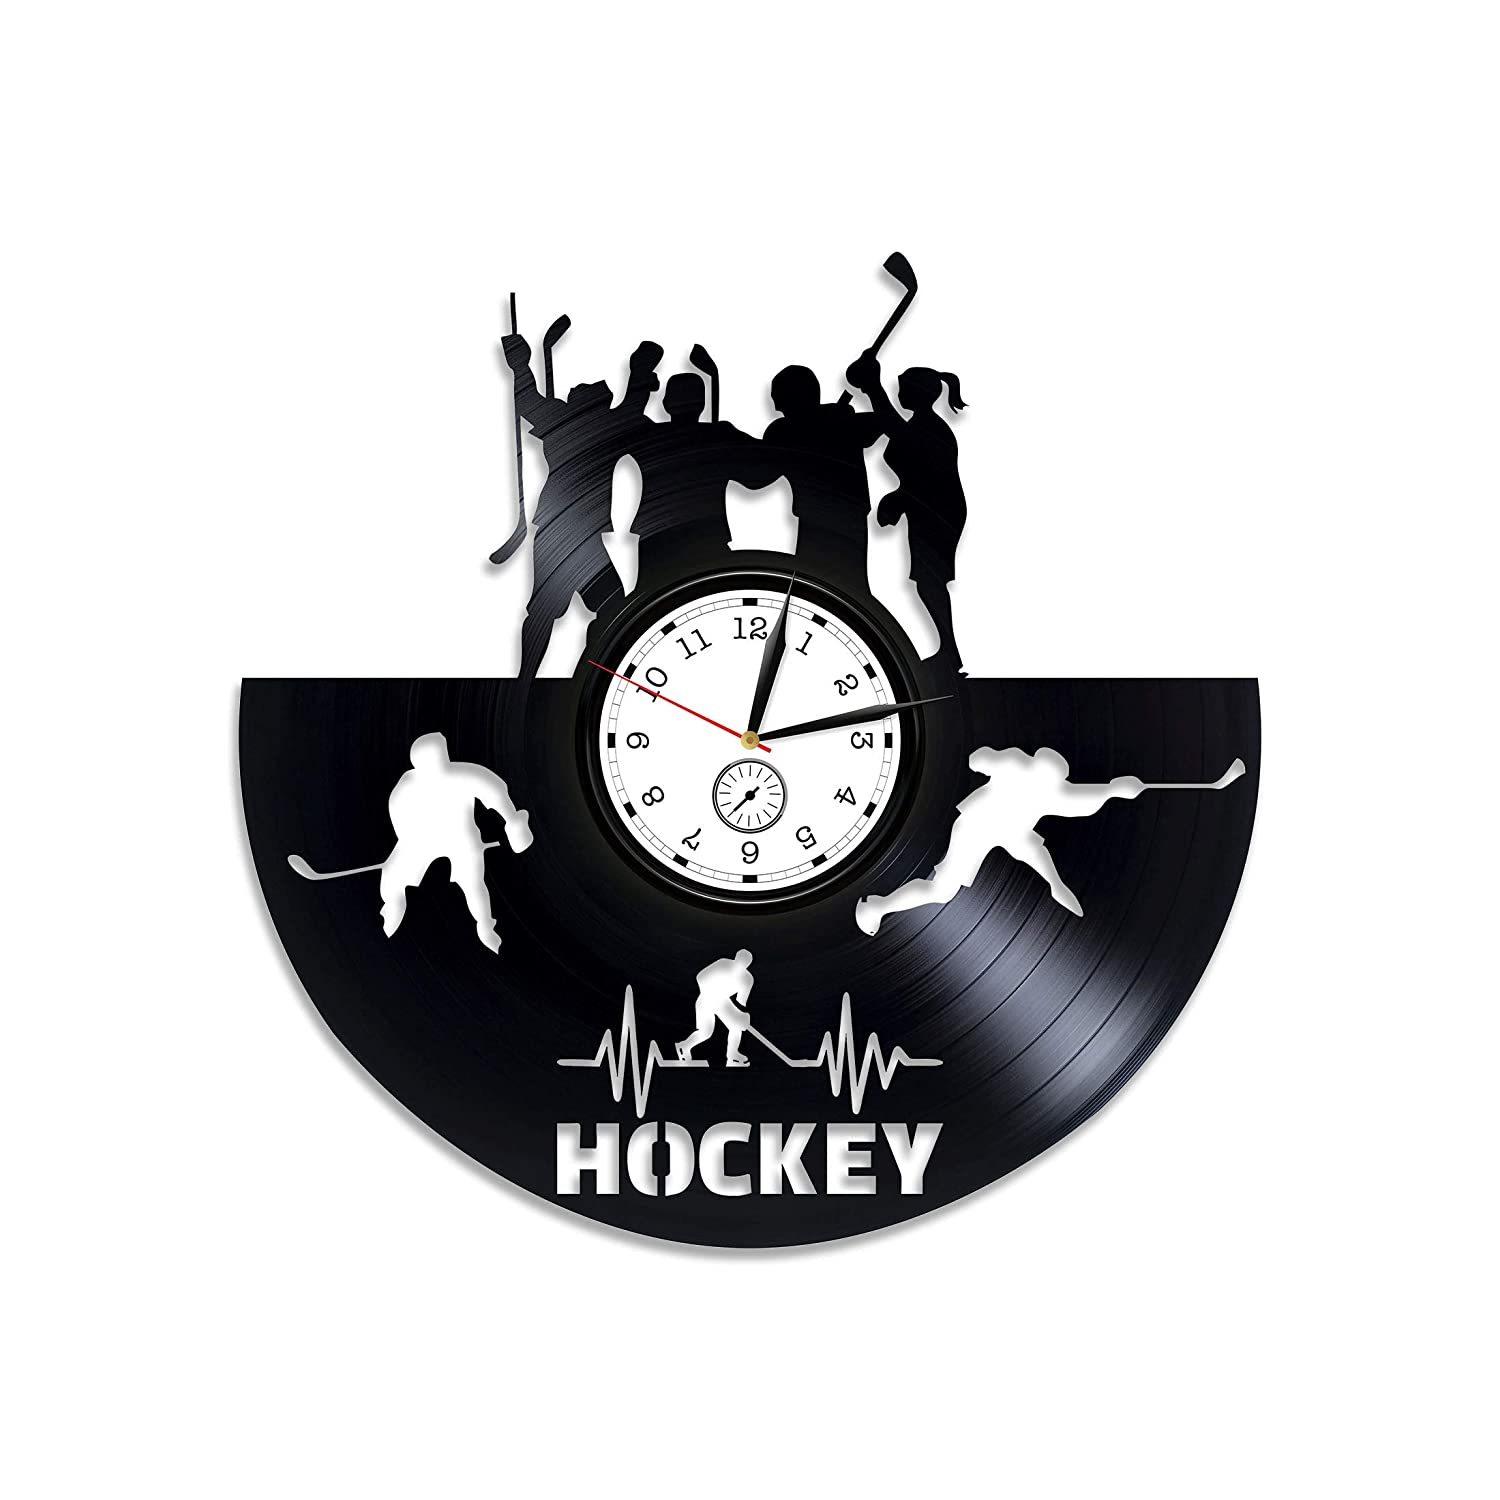 Kovides Hockey Vinyl Clock Hockey Vinyl Wall Clock Hockey Team Gift Ice Hockey Gift for Man Hockey Vinyl Record Wall Clock Ice Hockey Wall Clock VModern Hockey Clock Sport Gift for Him Sport Clock